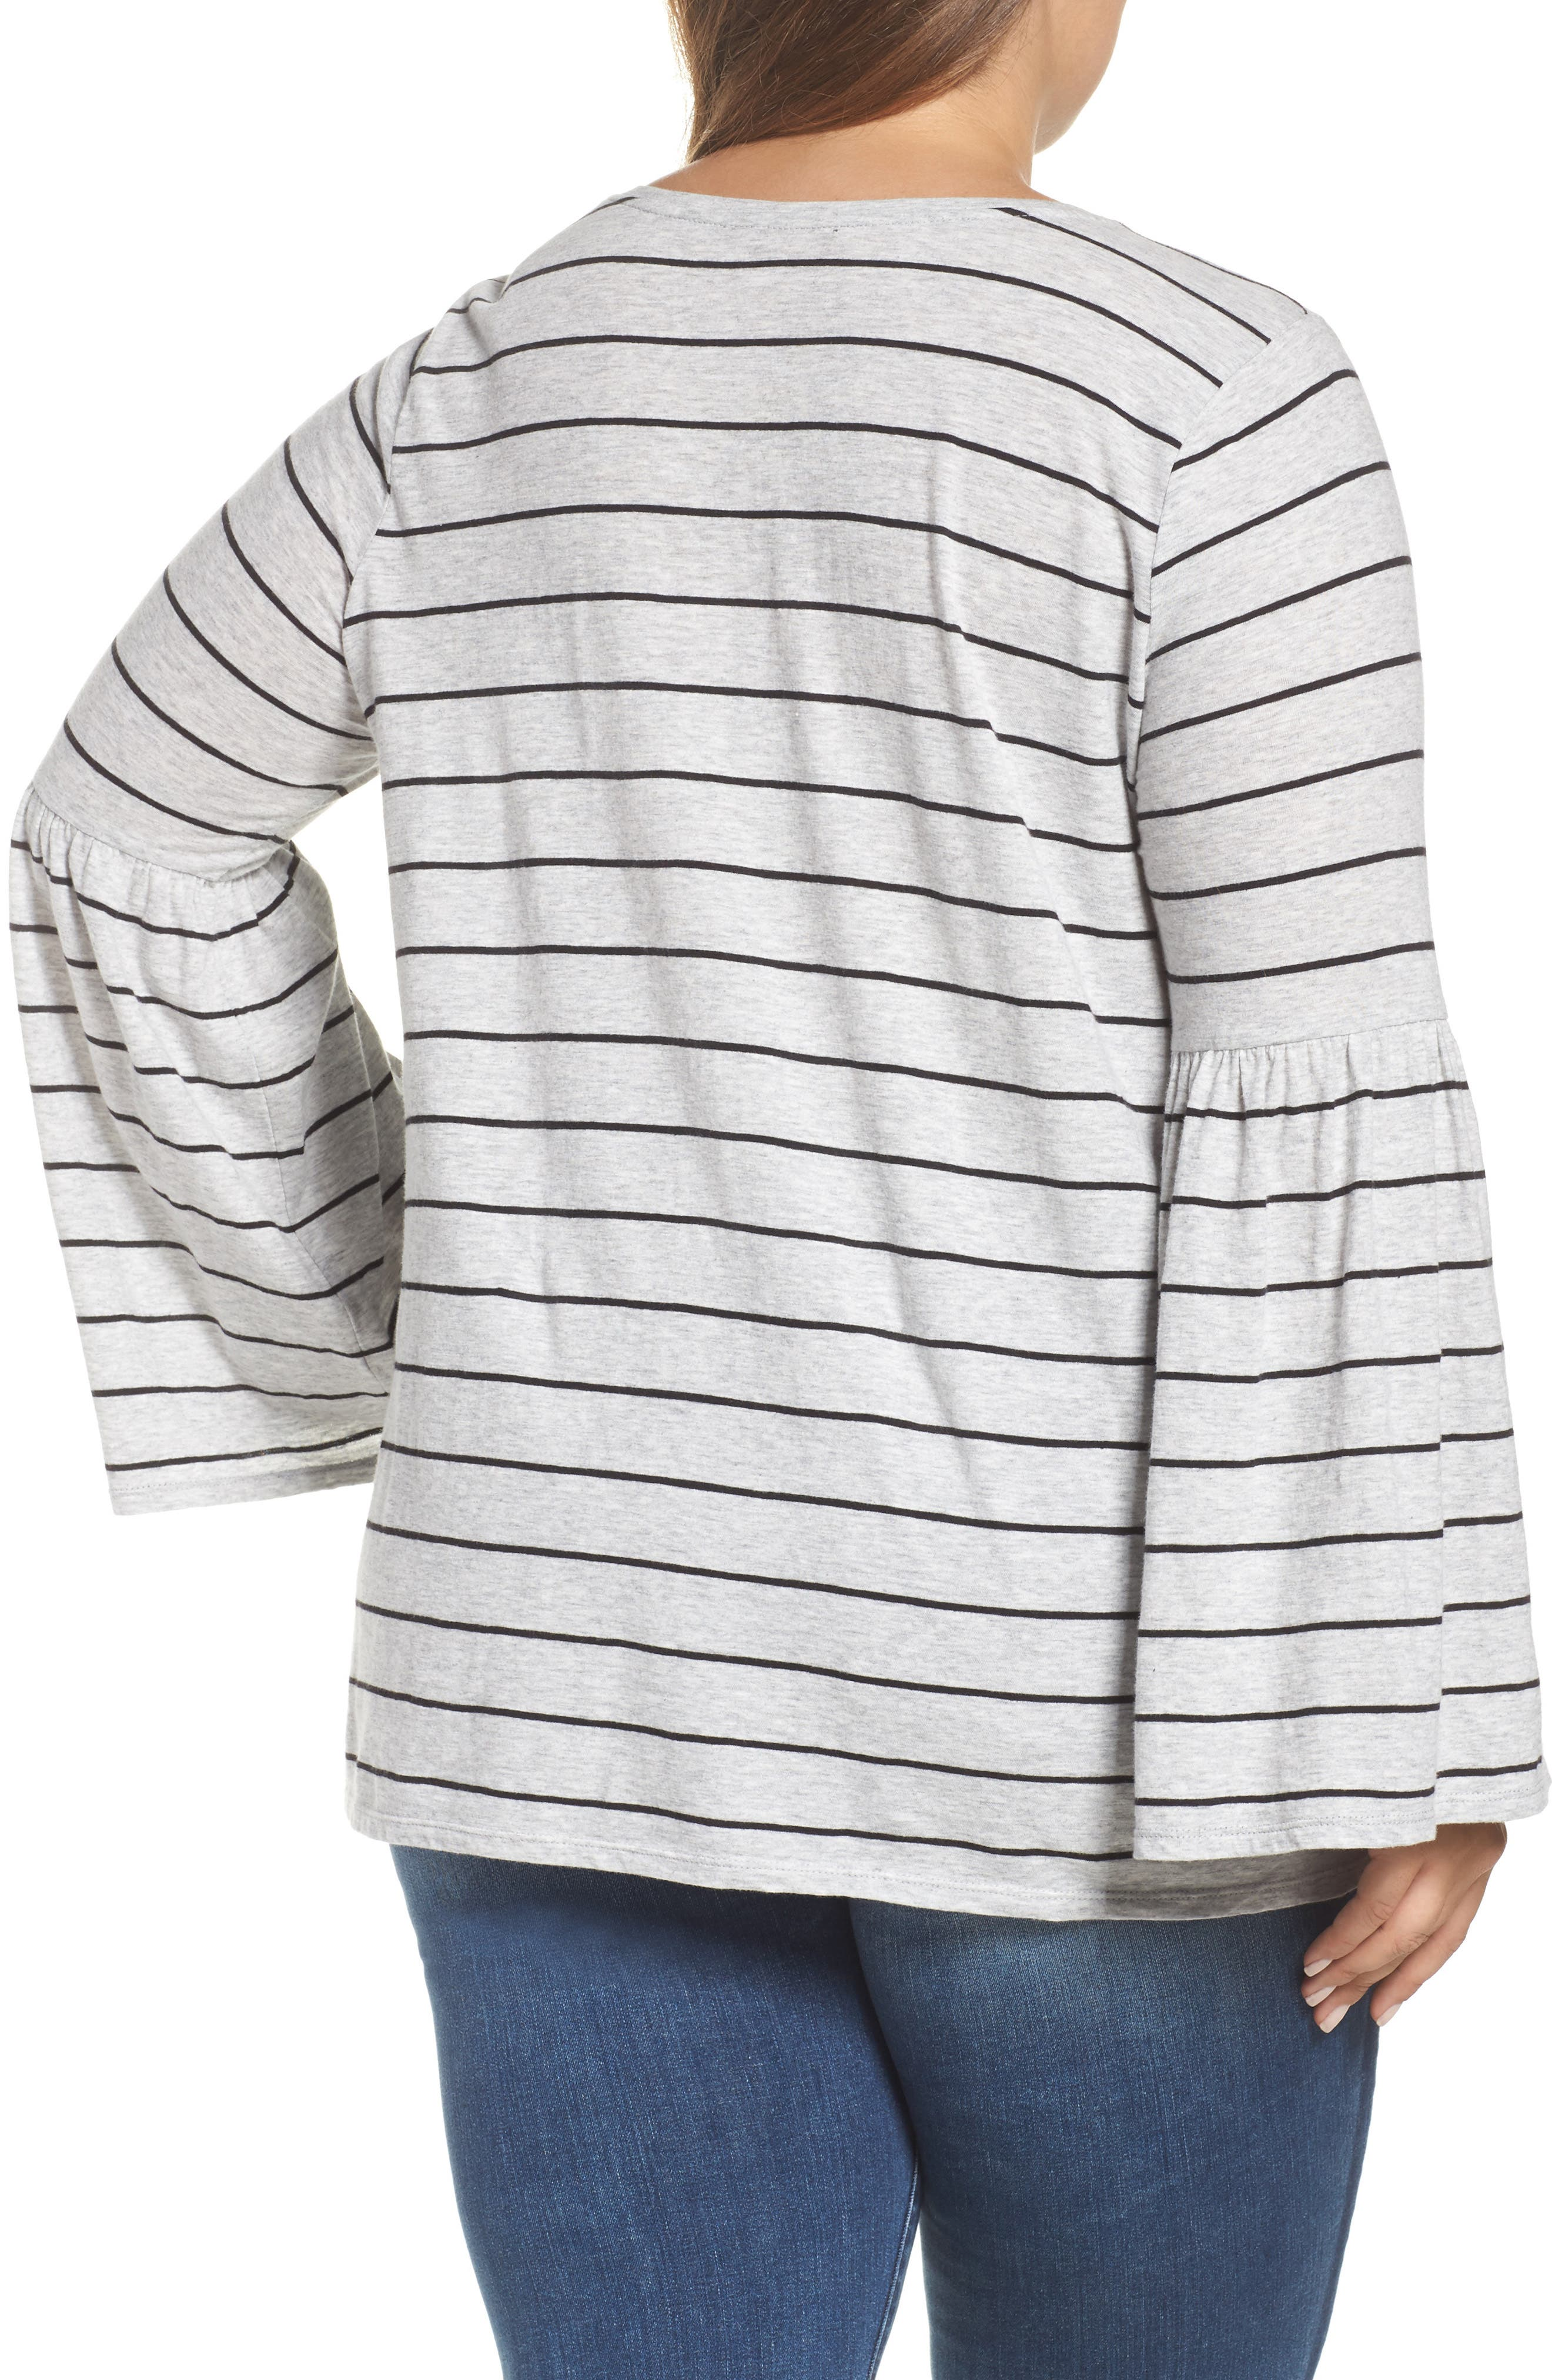 Alternate Image 2  - Two by Vince Camuto Nova Stripe Bell Sleeve Top (Plus Size)